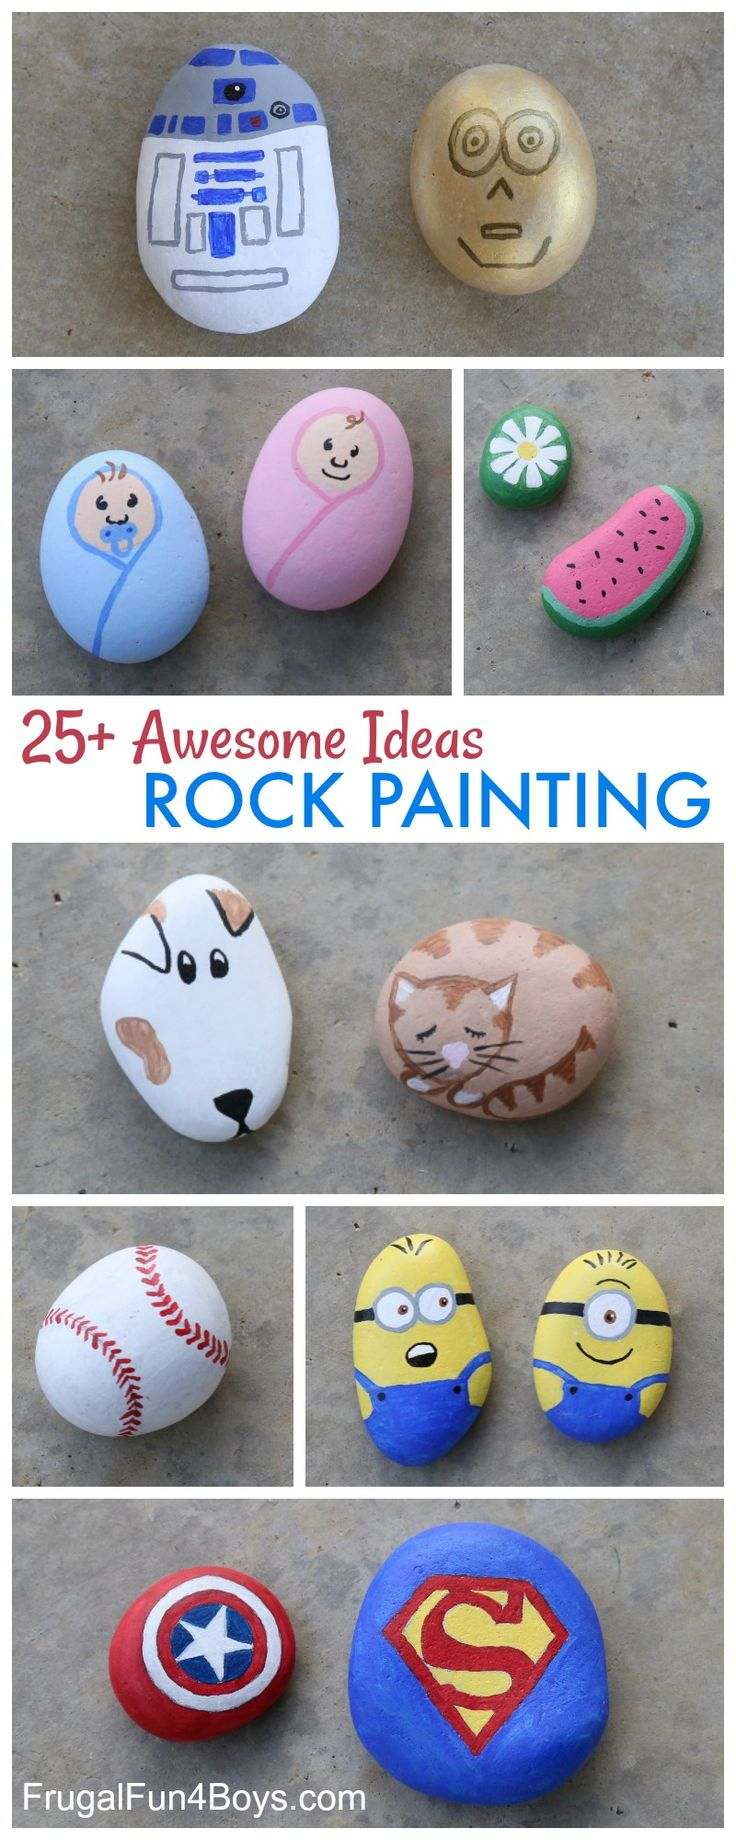 Rock painting seems to be a hot trend right now, and I can see why! It's fun and relaxing, and a great craft for all ages, toddler to adult. There's no wrong way to paint a rock! Since so many communities are doing hidden painted rock projects, etc., I thought it would be fun to...Read More »